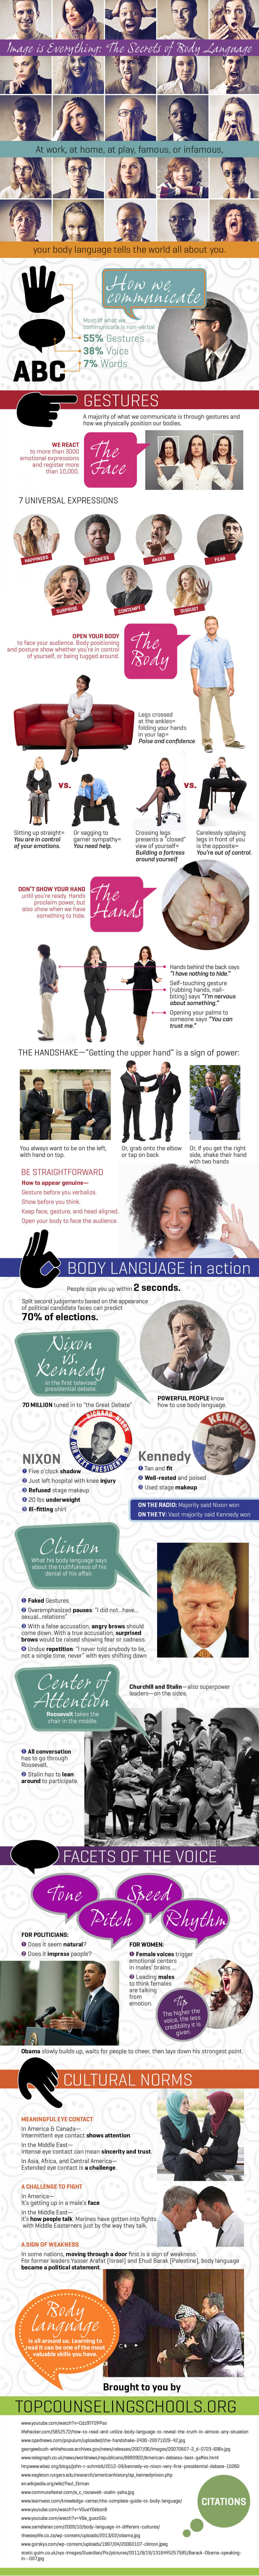 The Secrets of Body Language Infographic